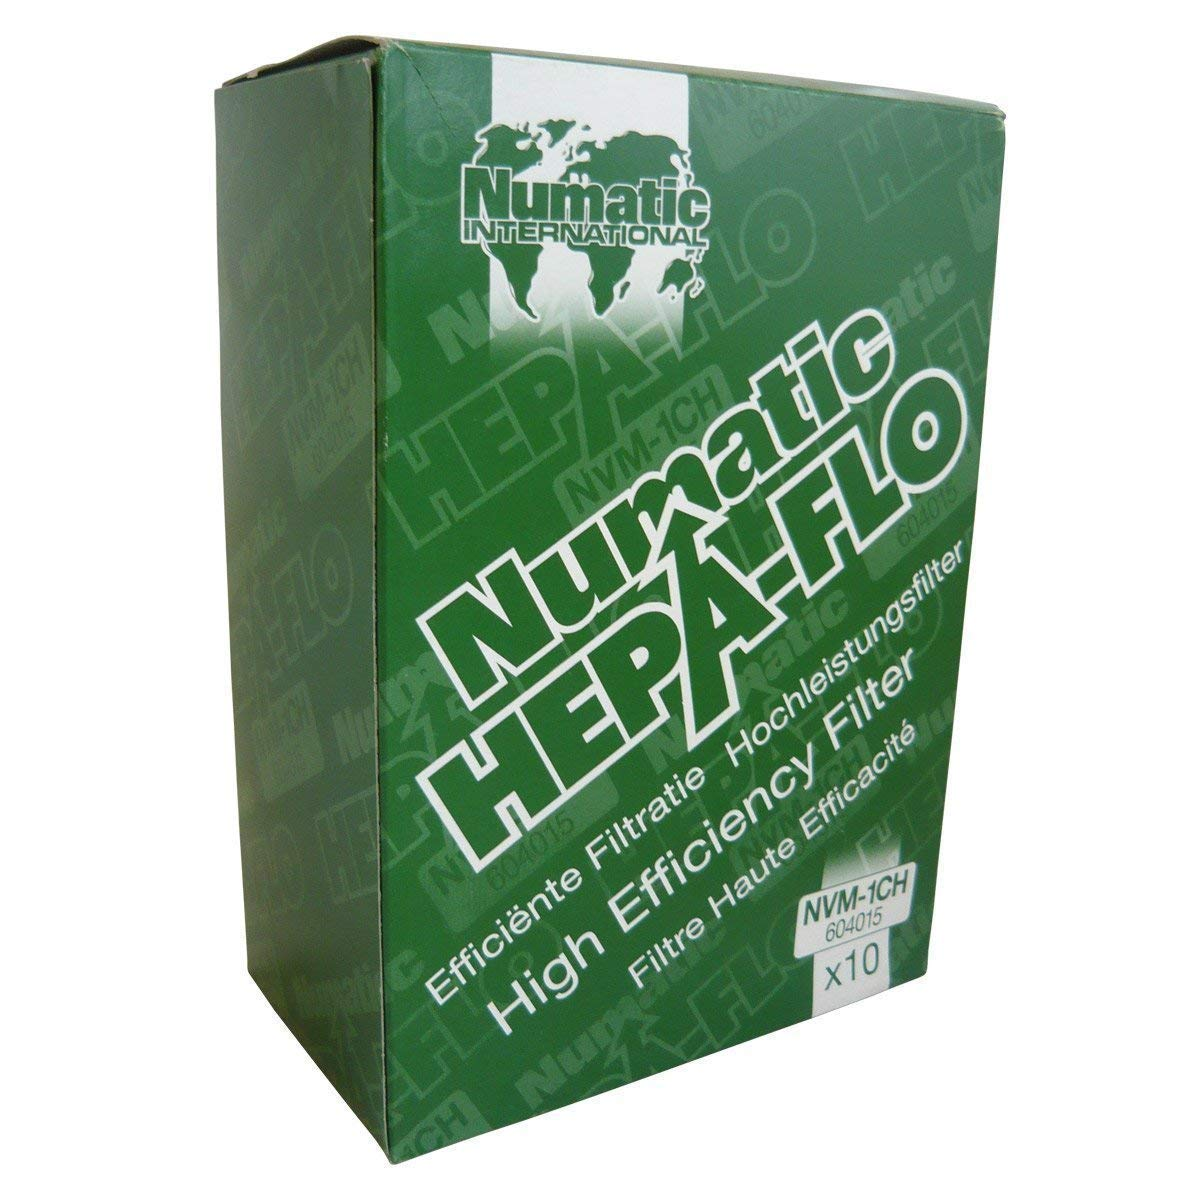 Numatic NVM-1CH HepaFlo' Disposable Filter Bags Pack - for the ''Henry'' HVR200A, the ''Hetty'' HET200A, the ''James'' JVP180, and the ''Henry Micro'' HVR200M Vacuum Cleaners - (10-Bags Per Pack)